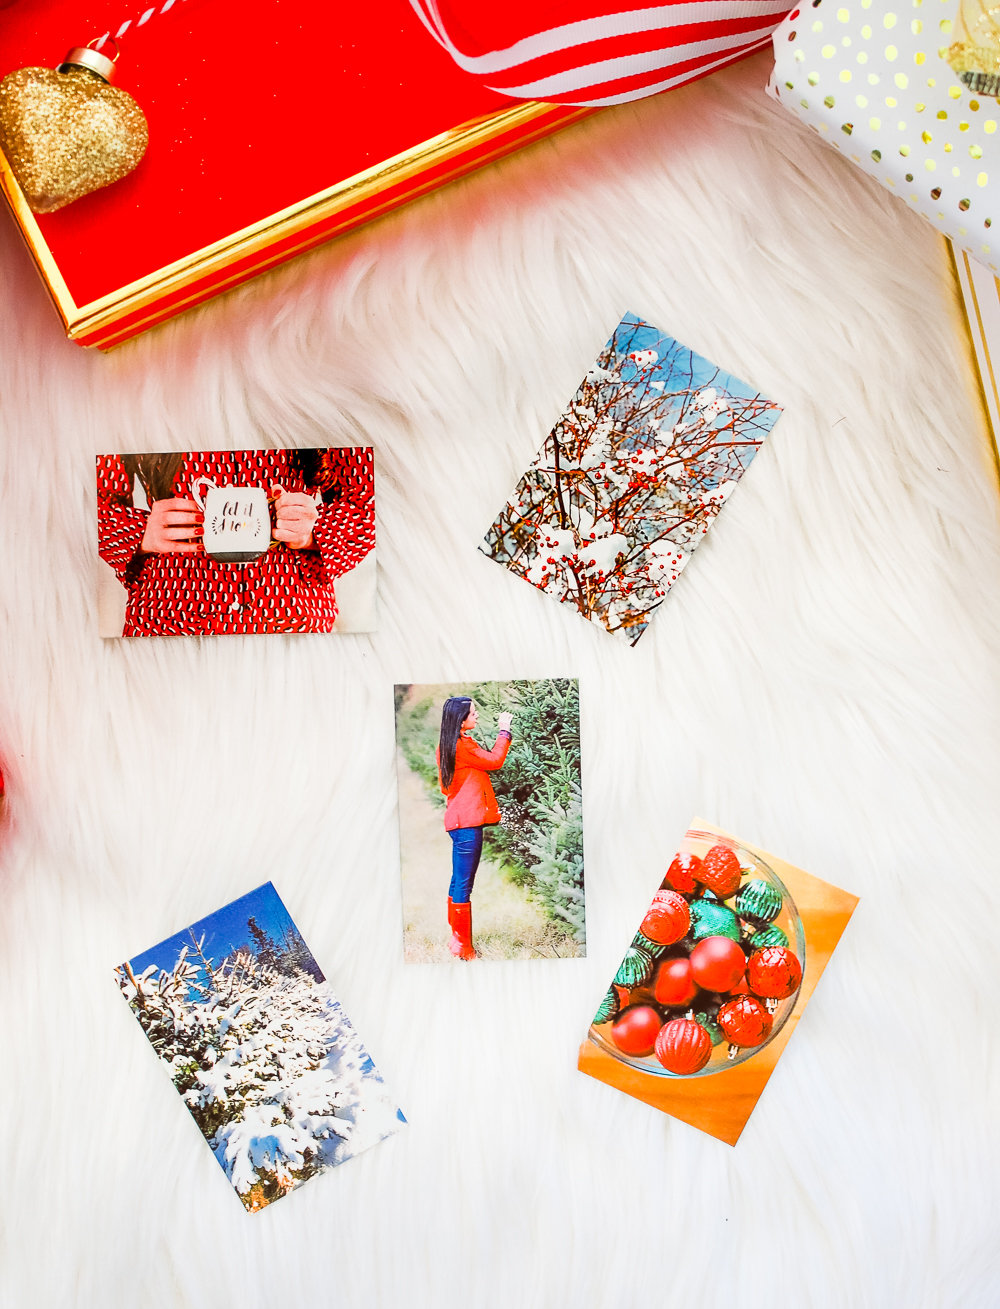 Red HP Sprocket Photo Printer, which makes a perfect stocking stuffer and is the best instant photo printer for events and travel by southern blogger Stephanie Ziajka from Diary of a Debutante